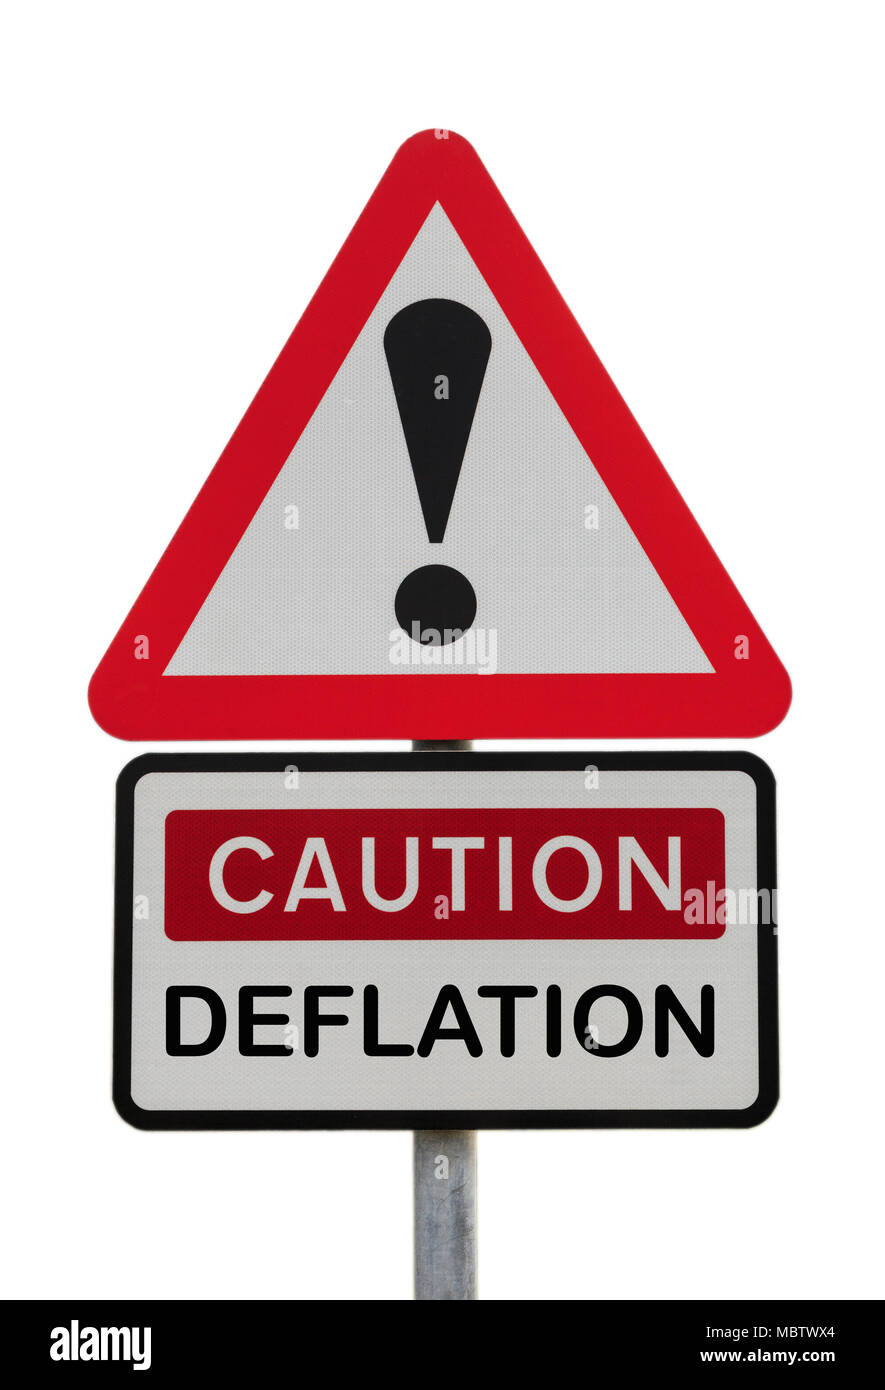 Triangular sign warning Caution Deflation with exclamation mark to illustrate financial future concept. UK, Britain, Europe - Stock Image